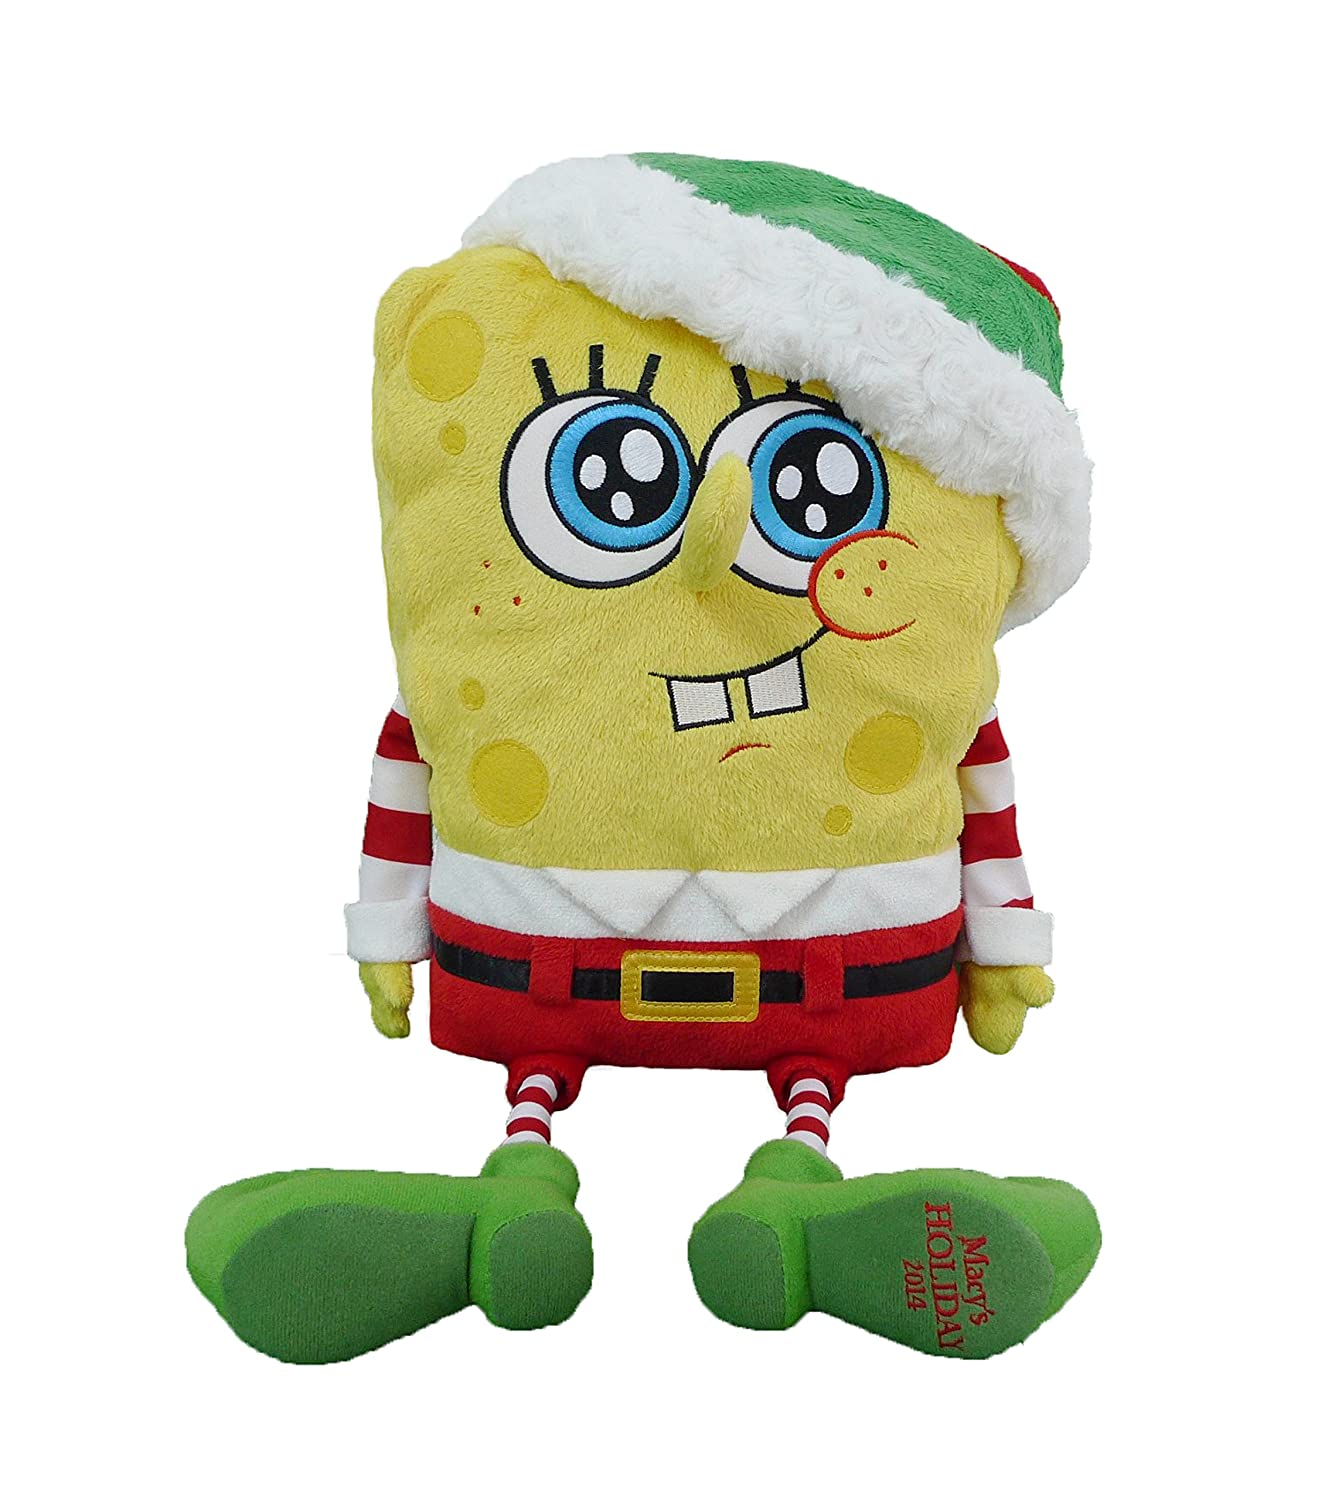 2014 macy s thanksgiving day parade holiday spongebob